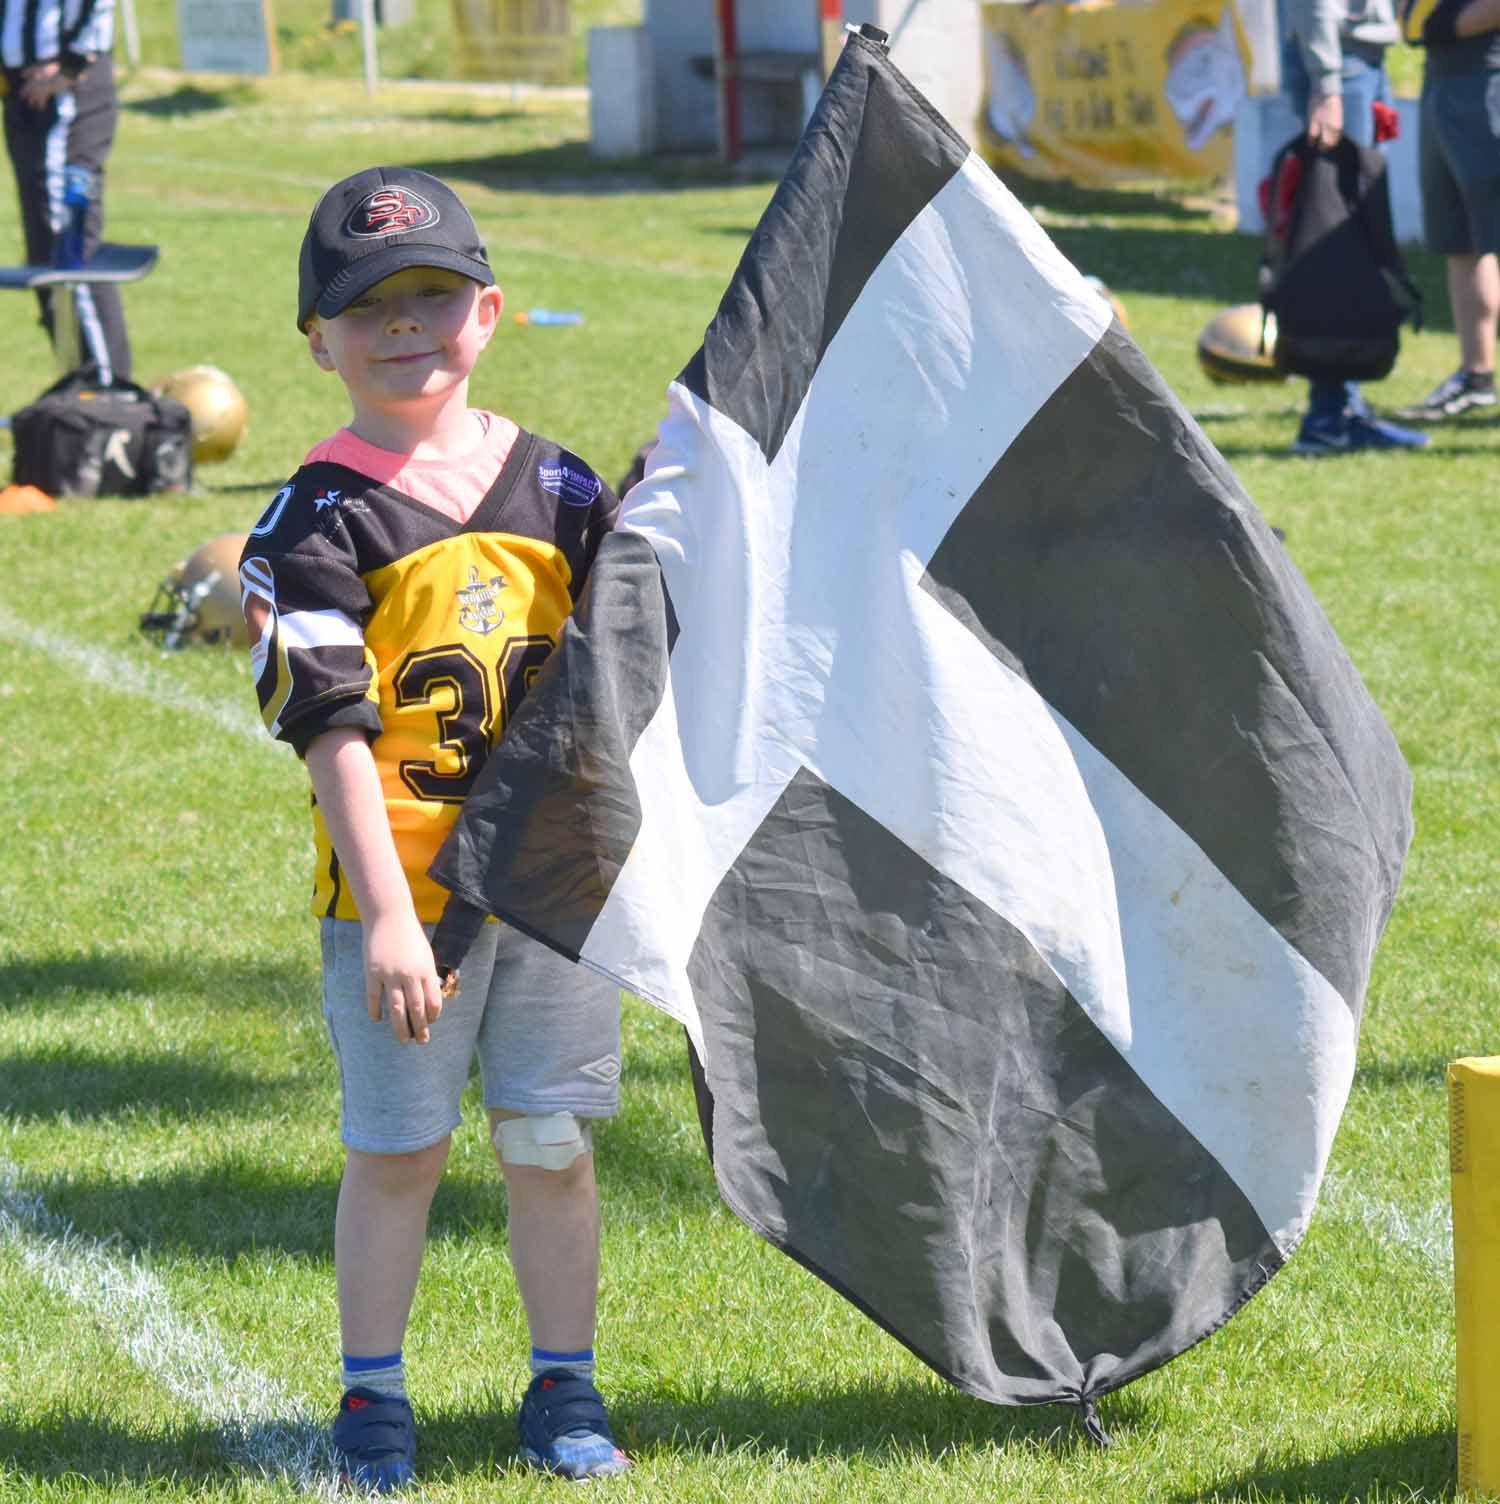 Team mascot waves the Cornish Flag